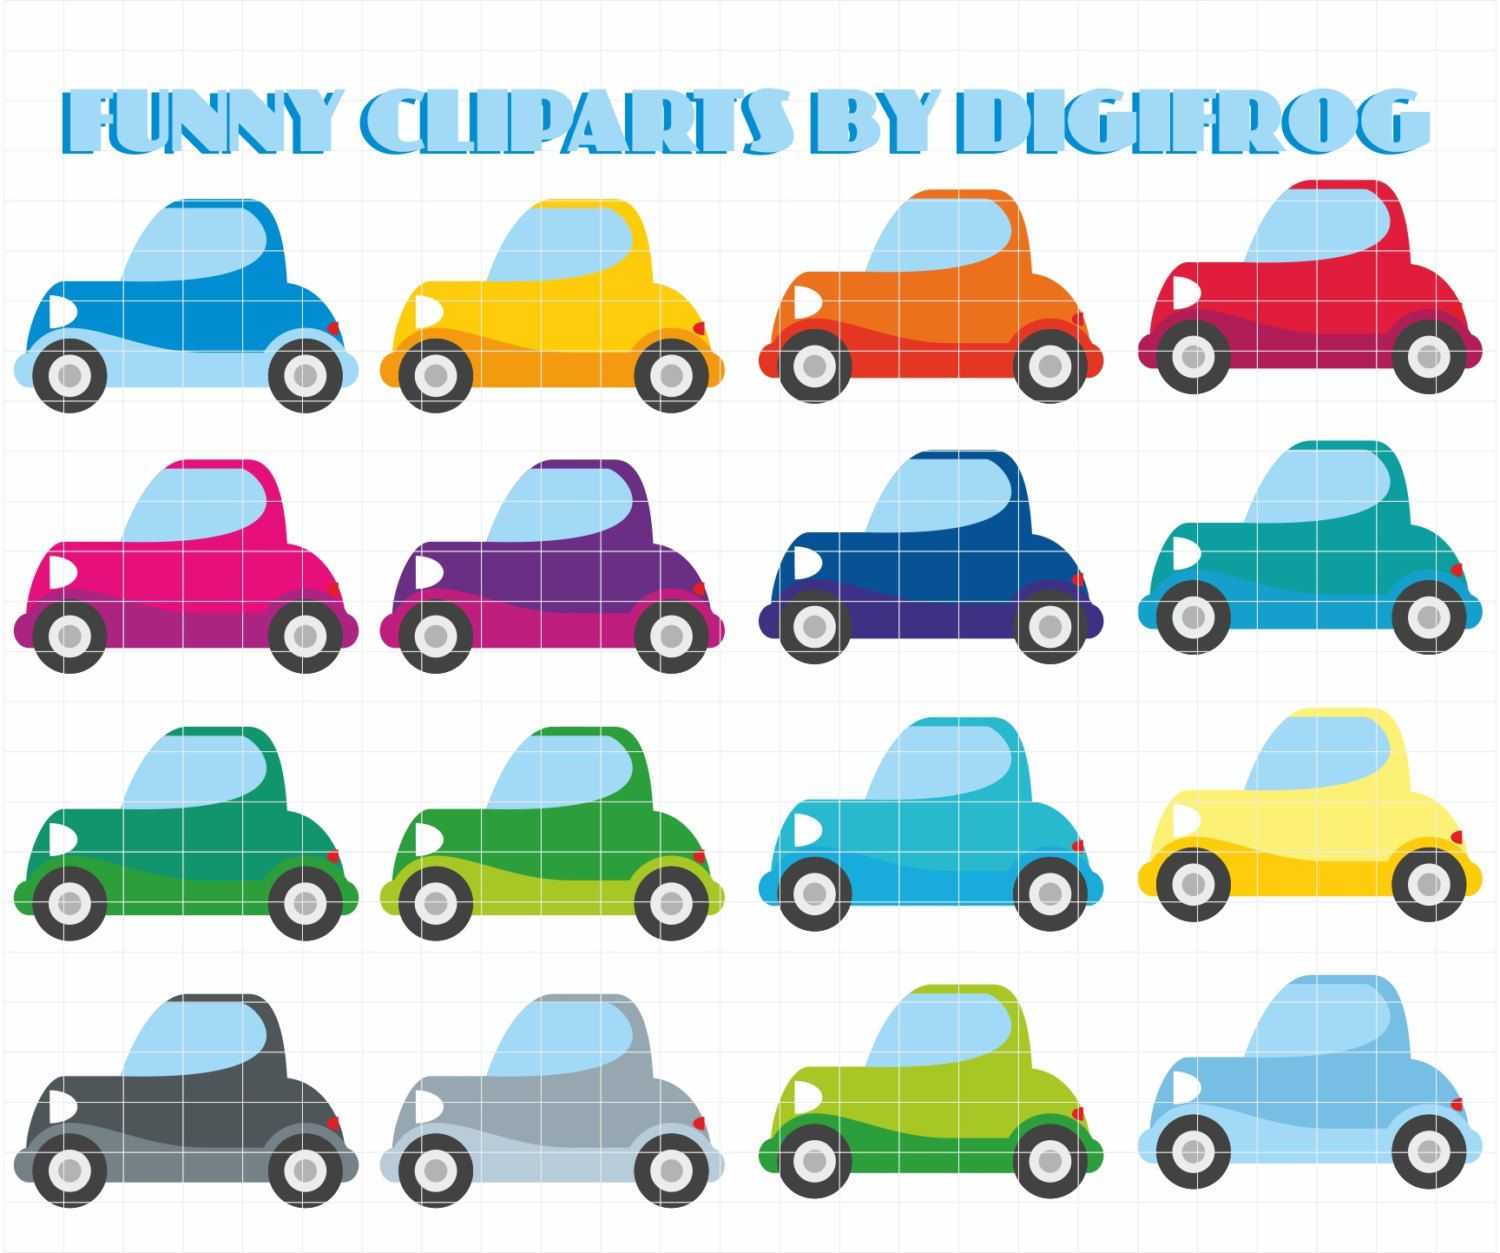 Small Cars 2 Digital Image Little Car Clipart Digital Cars Clipart Printable Car Stickers Cars Clipart Set Boys Graphics Small Cars Toy Car Car Posters [ 1253 x 1500 Pixel ]